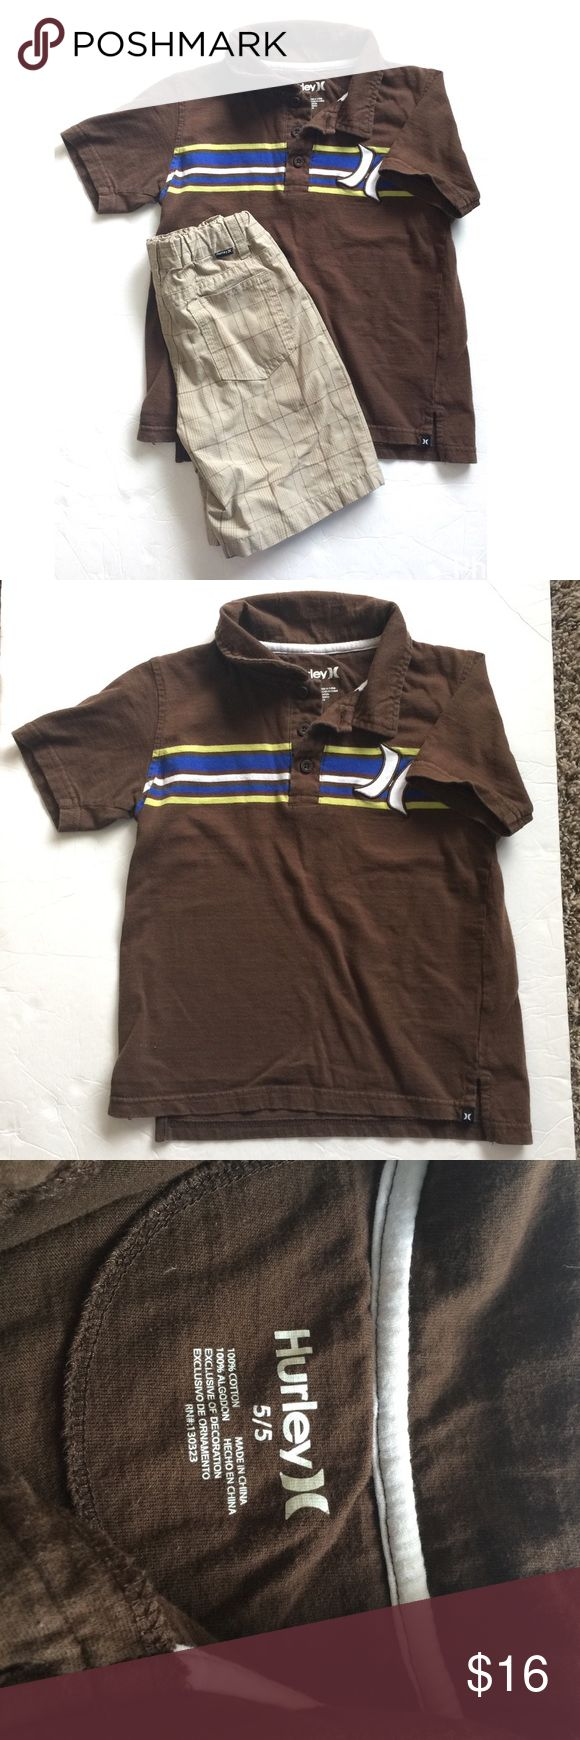 Hurley outfit Brown polo shirt short sleeve with matching plaid shorts Hurley Matching Sets